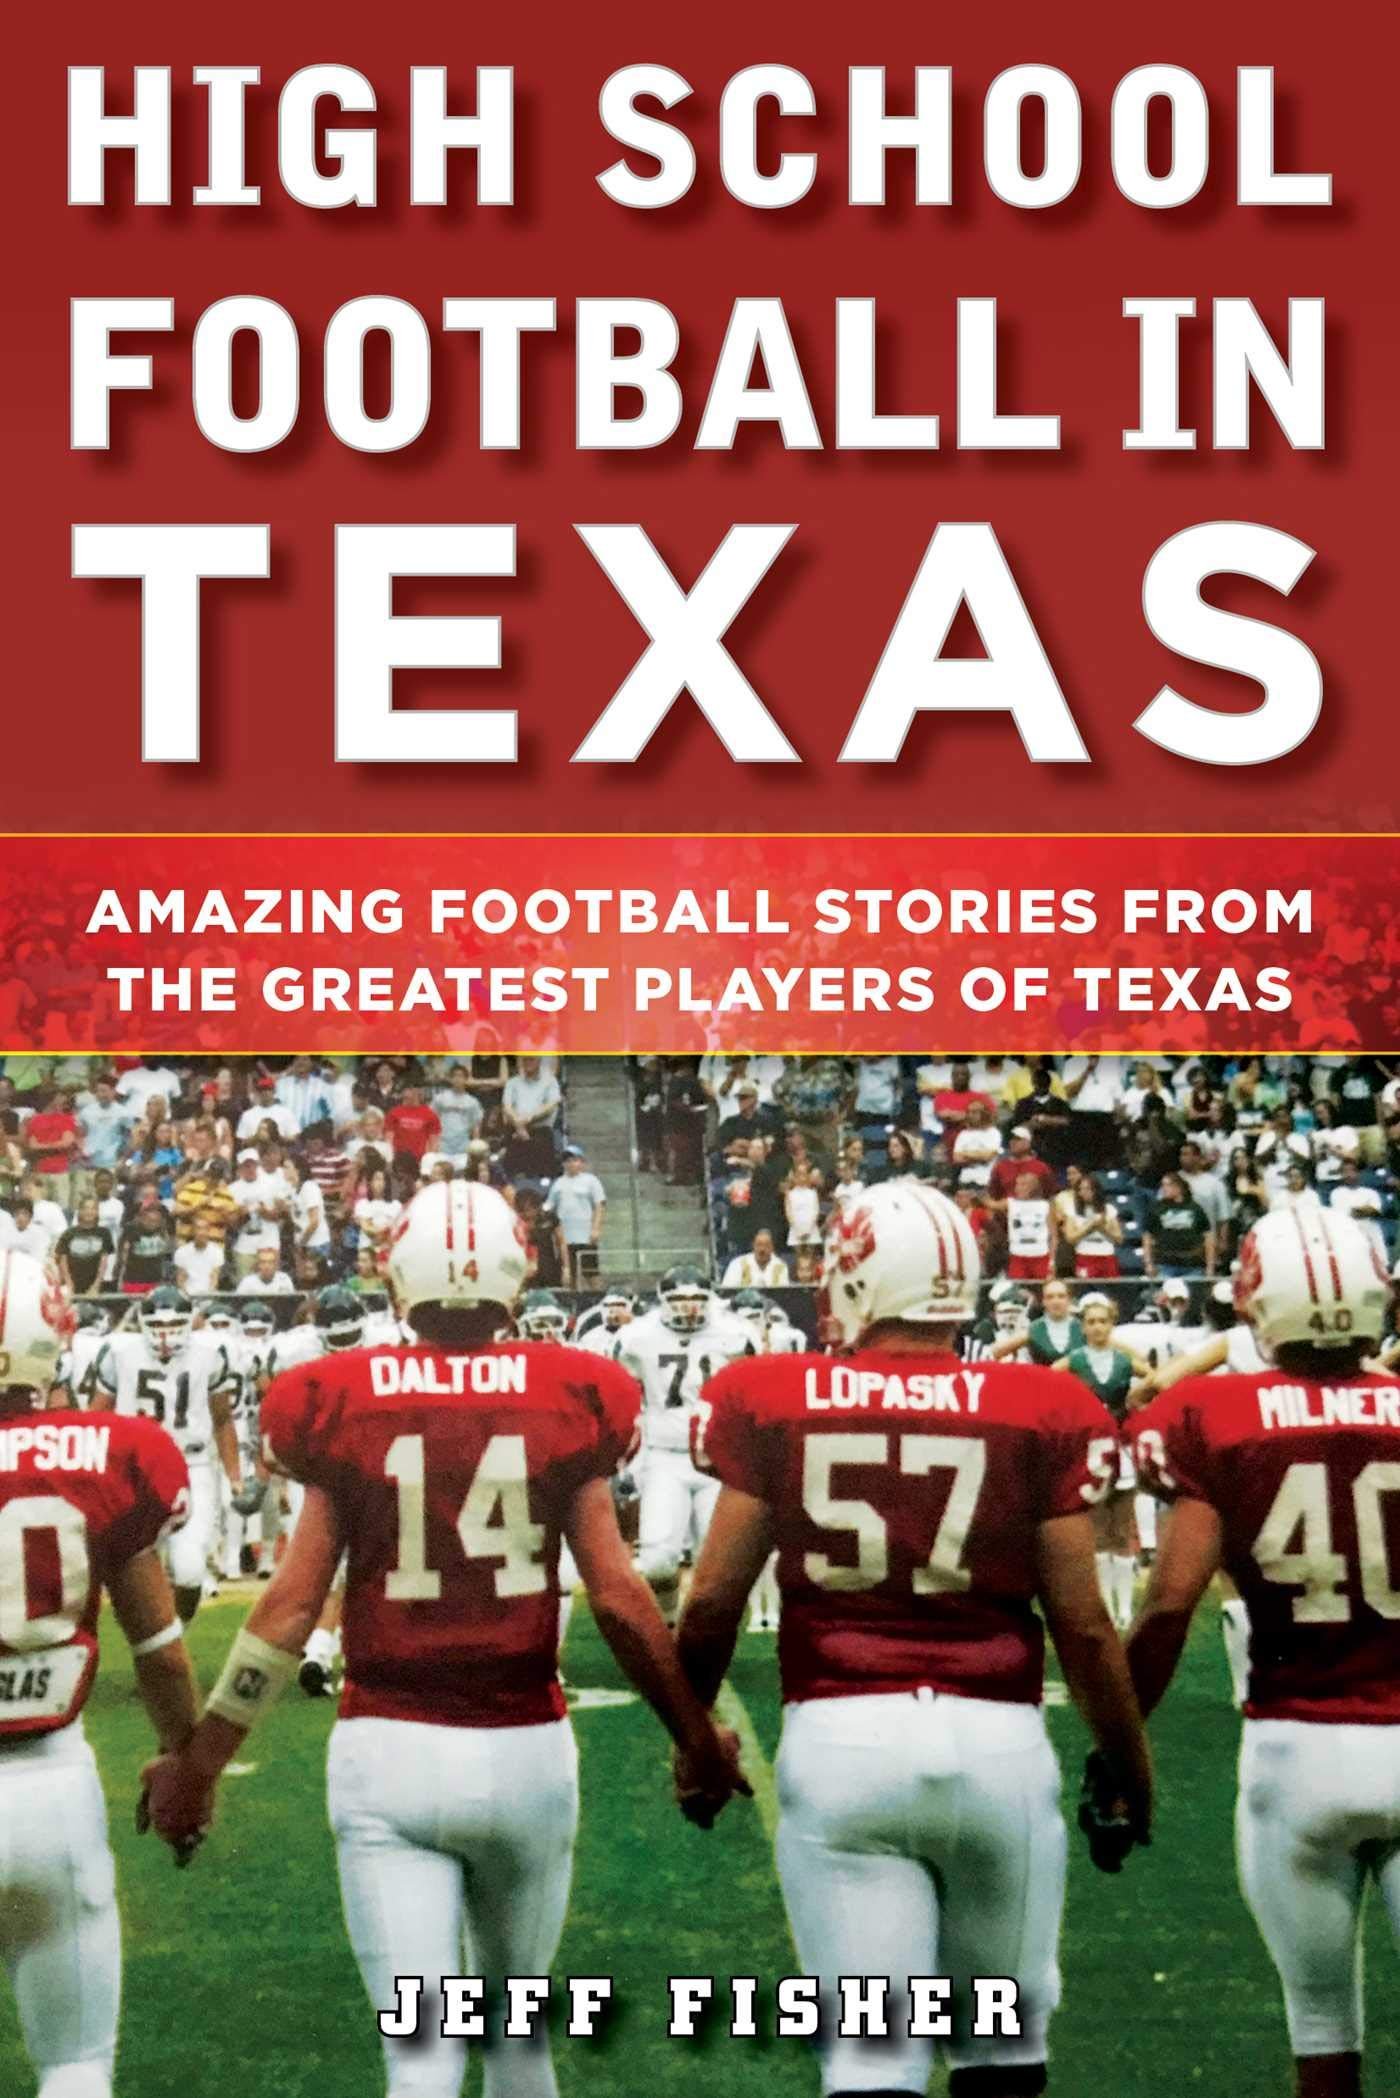 Image OfHigh School Football In Texas: Amazing Football Stories From The Greatest Players Of Texas